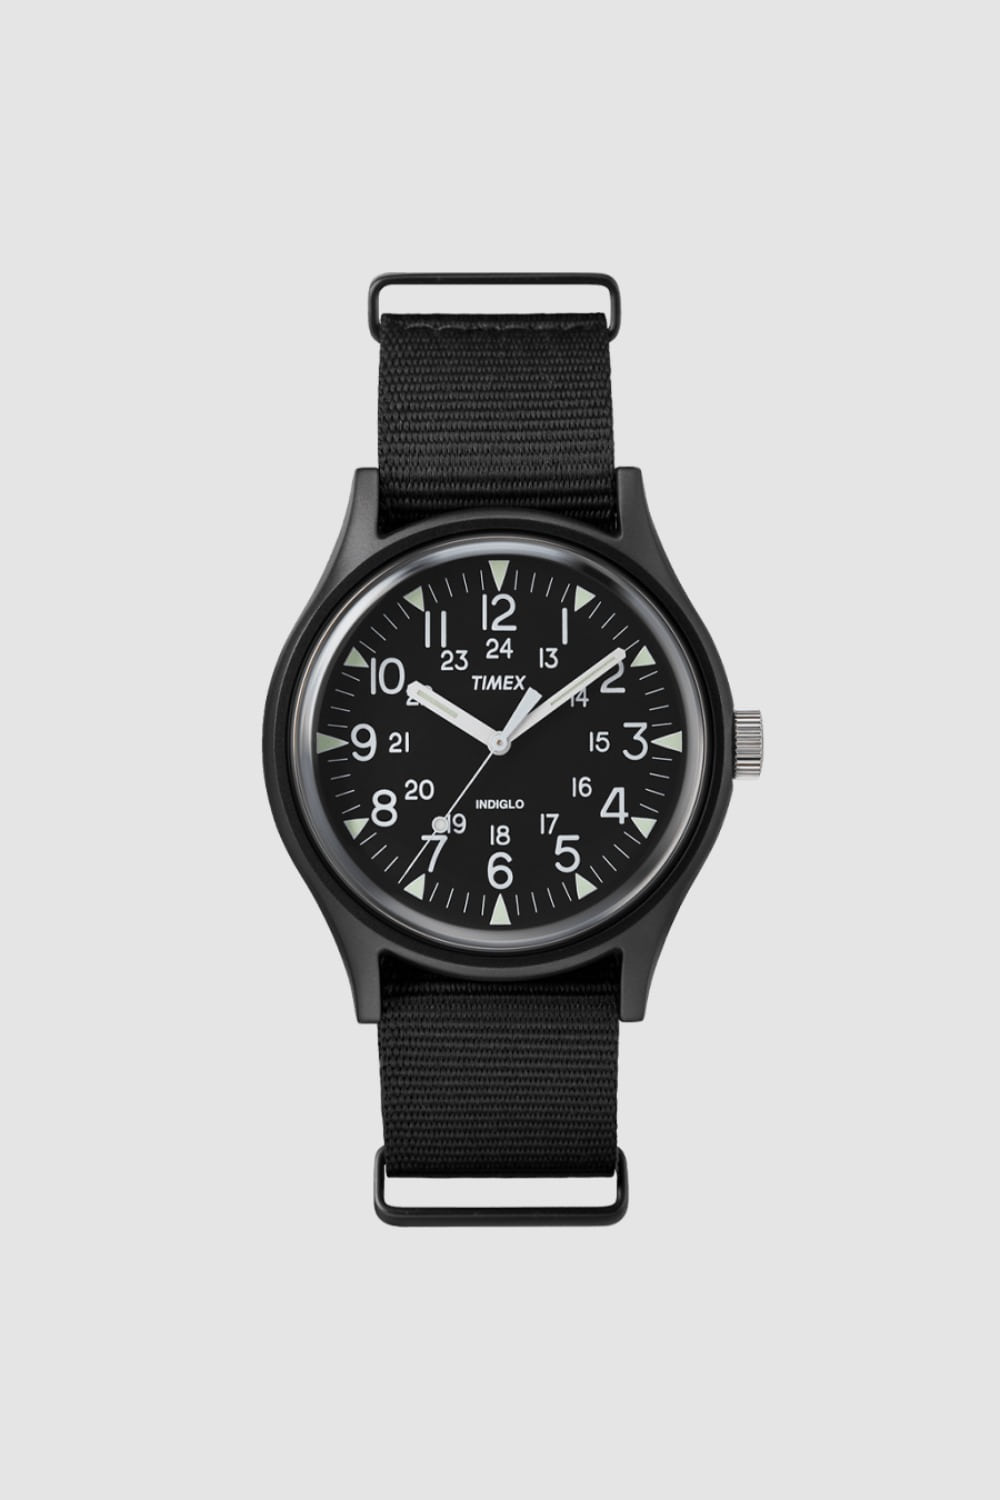 MK1 ALUMINUM 40mm FABRIC WATCH(TW2R37400)